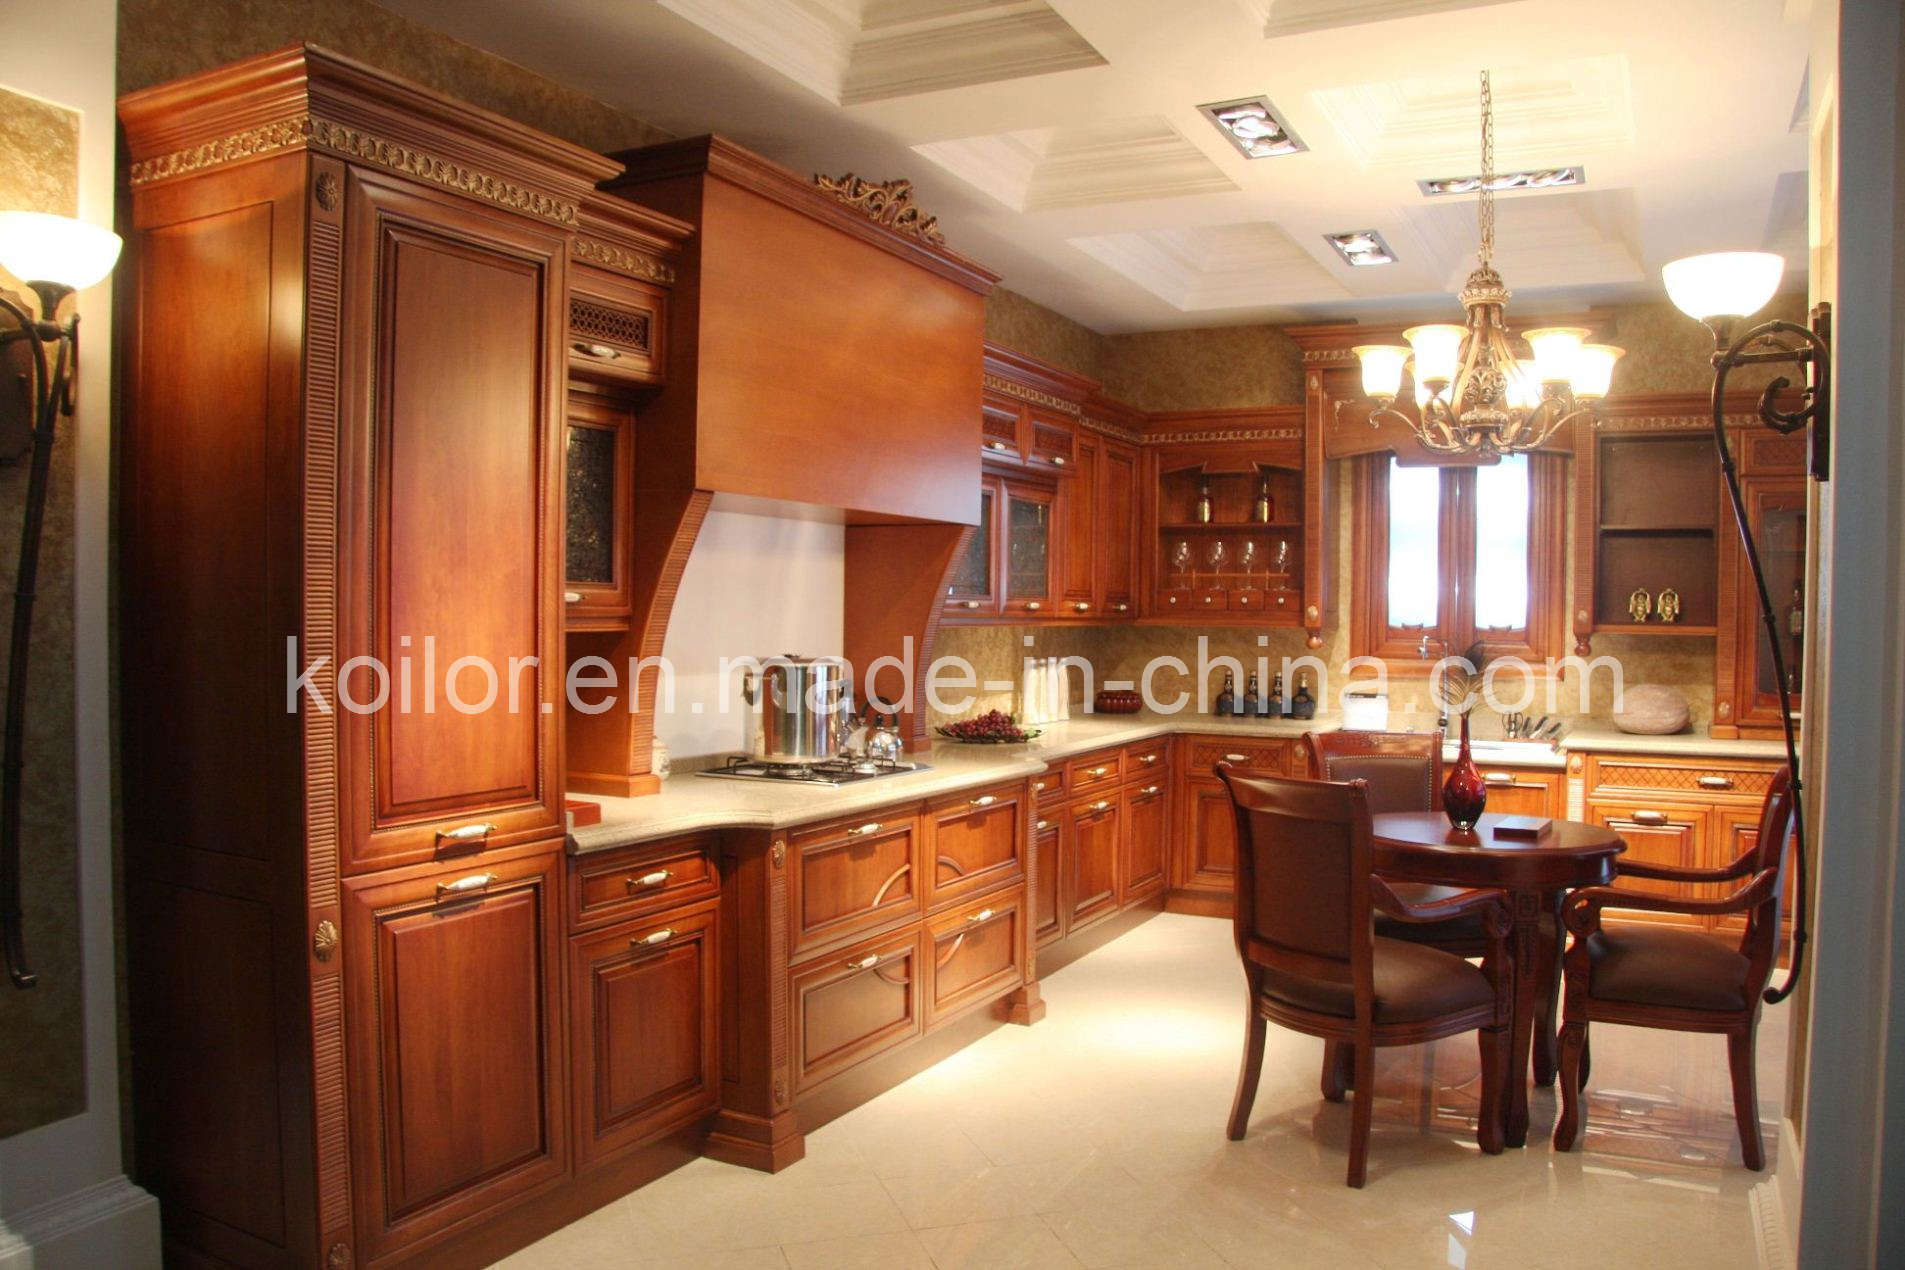 China Kitchen Cabinet Solid Wood Kitchen Cabinets Royal China Kitchen Kitchen Cabinet